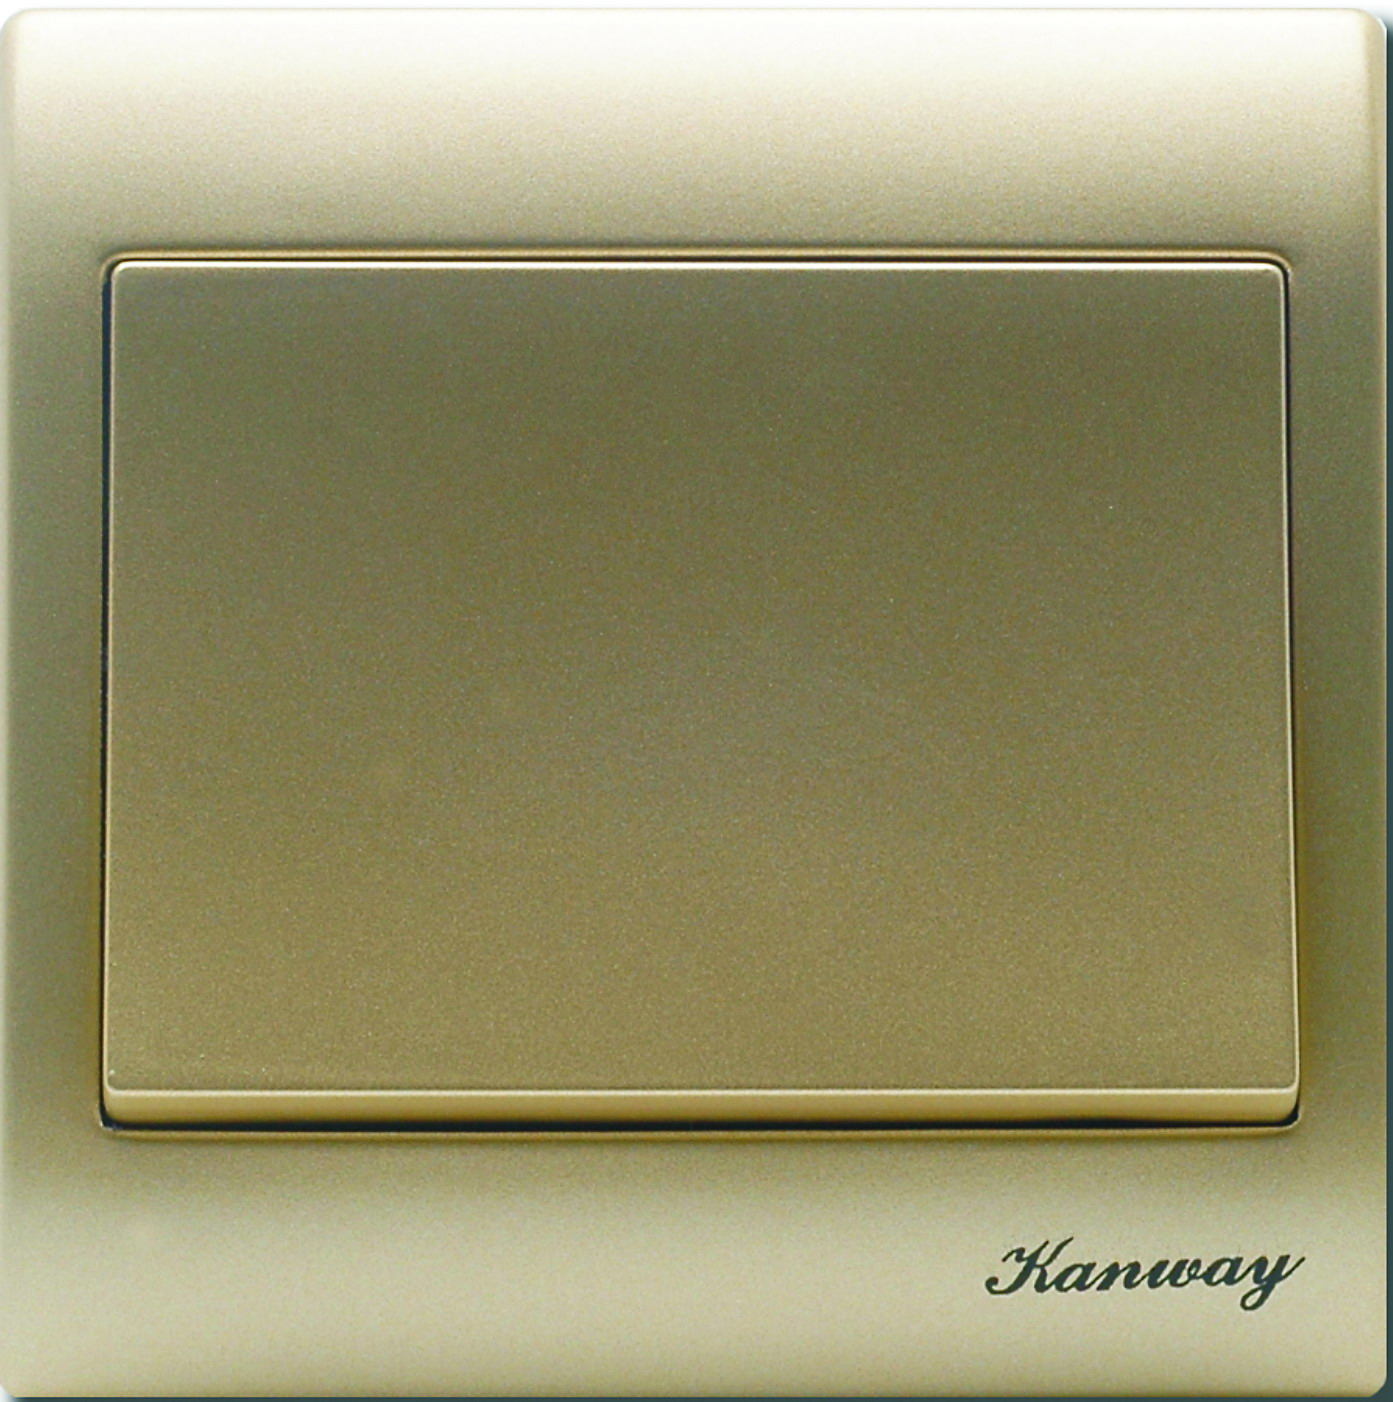 Switches And Receptacles Kanway Manufacturing Inc 2 Way Switch Colours Color Gold Spec 250v 10a Desc Single Pole 1 Or With Wallplate